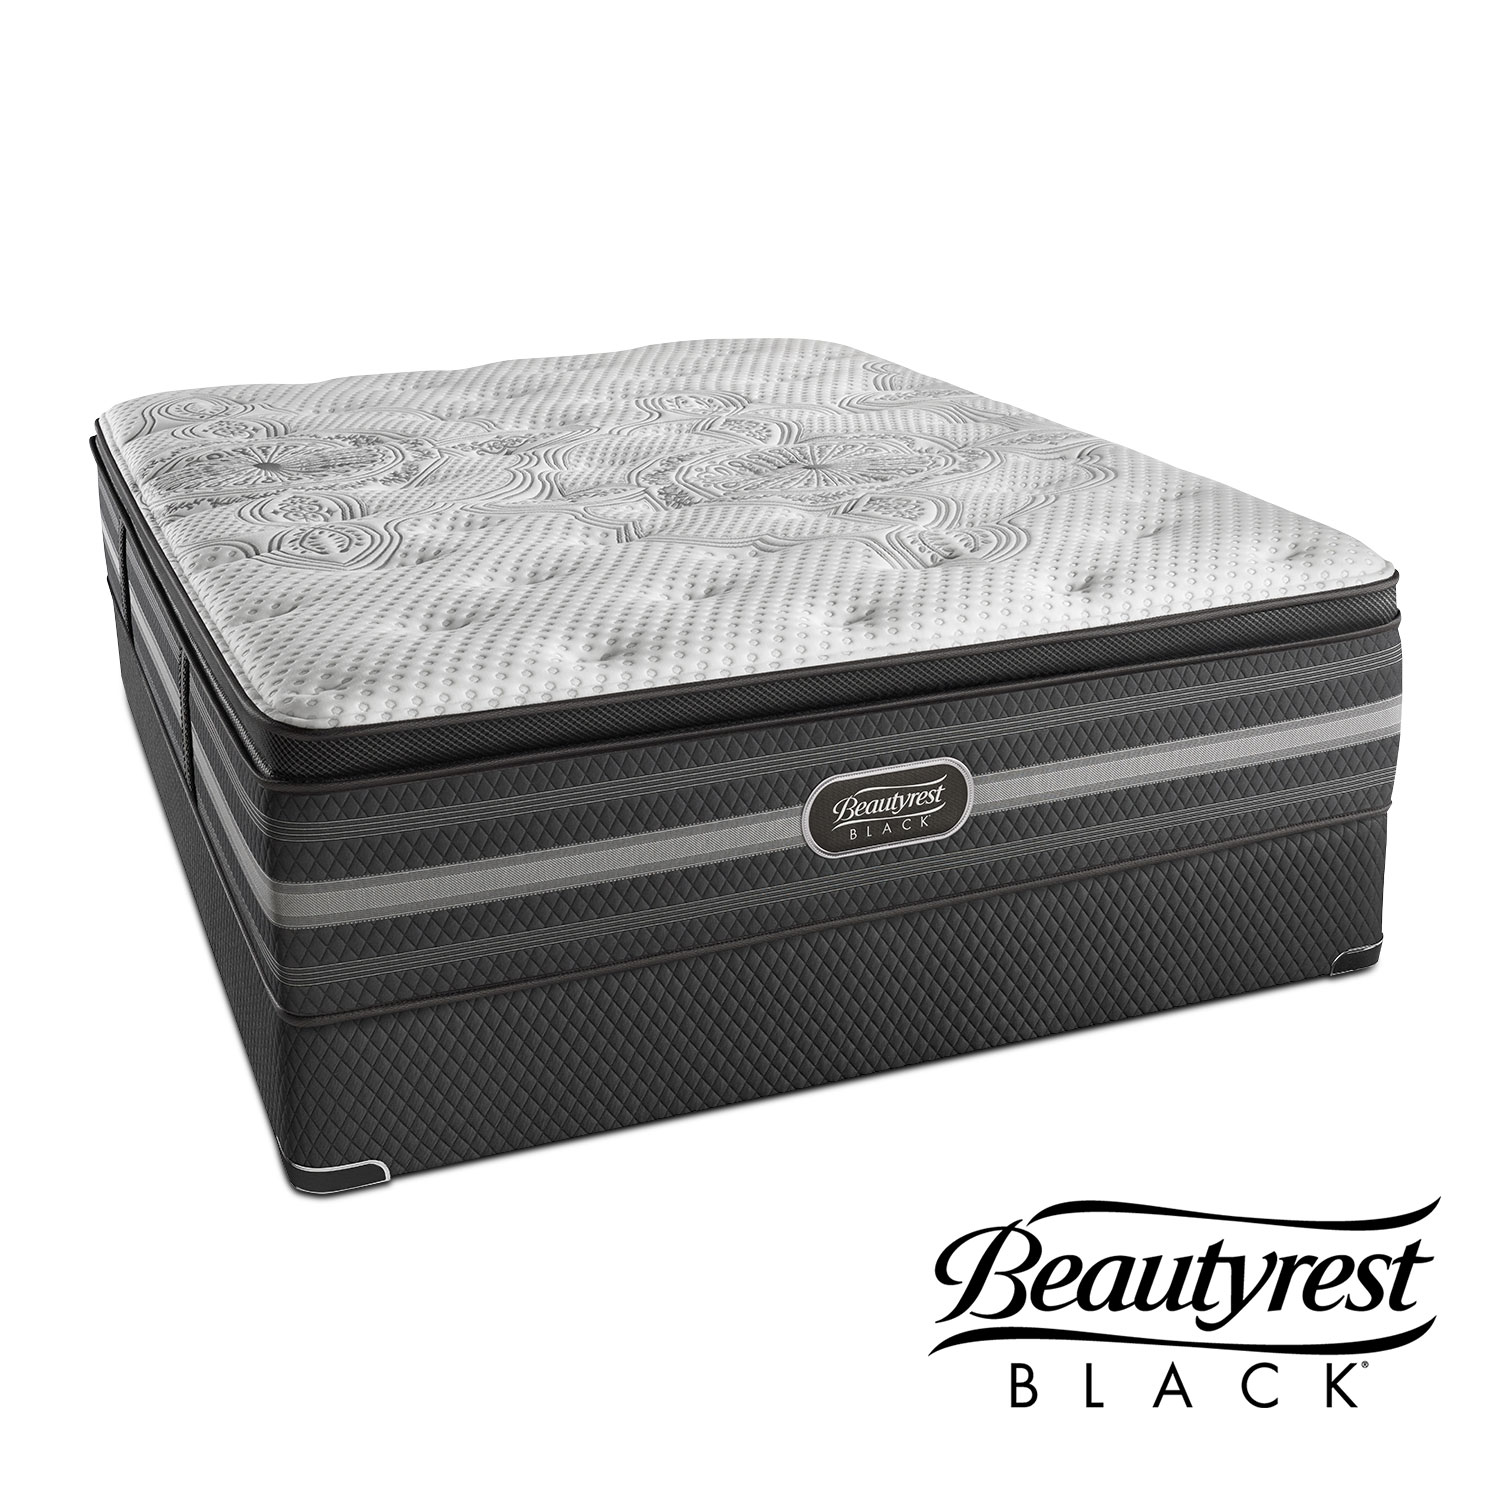 Mattresses and Bedding - Katarina Luxury Firm Queen Mattress and Split Foundation Set